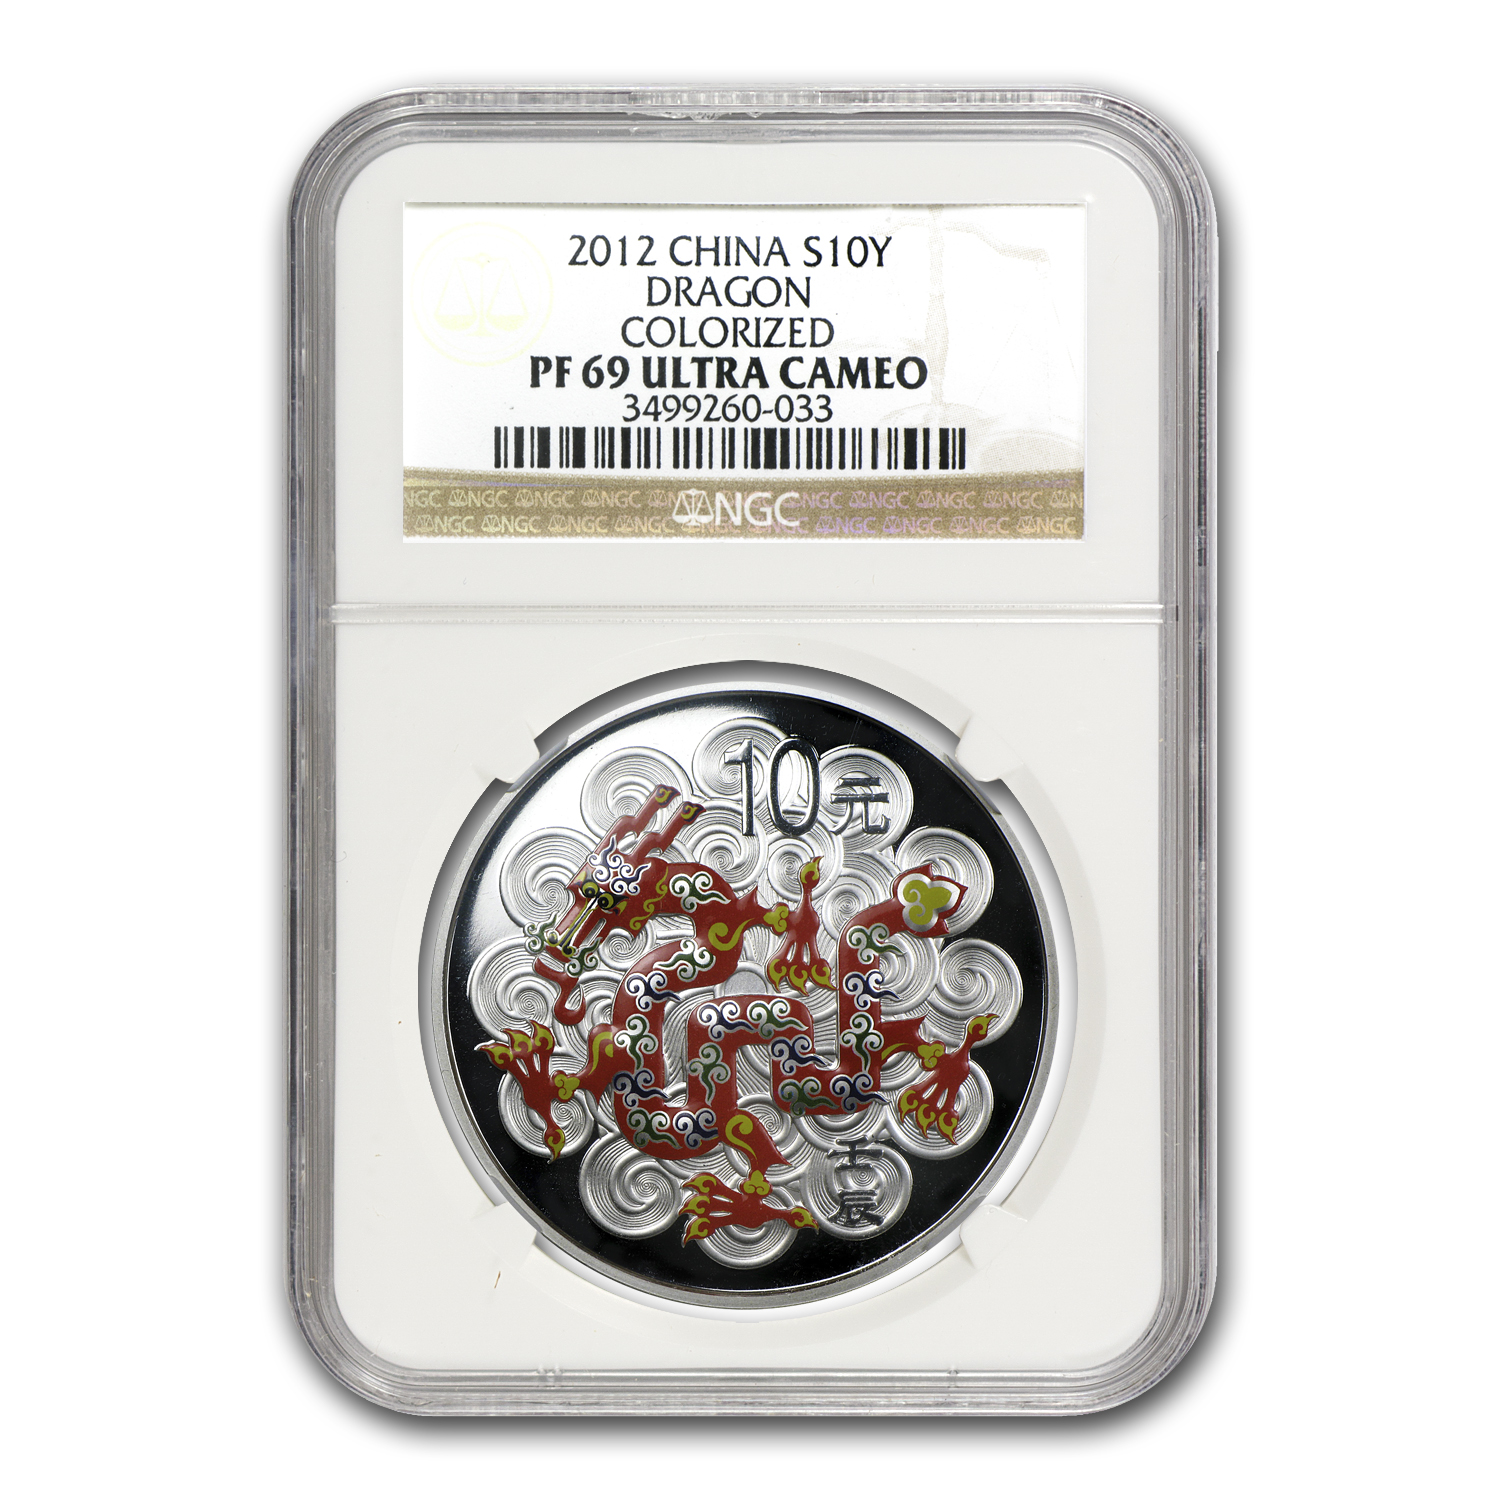 2012 China Lunar Dragon 1 oz Silver Colorized Proof NGC PF-69